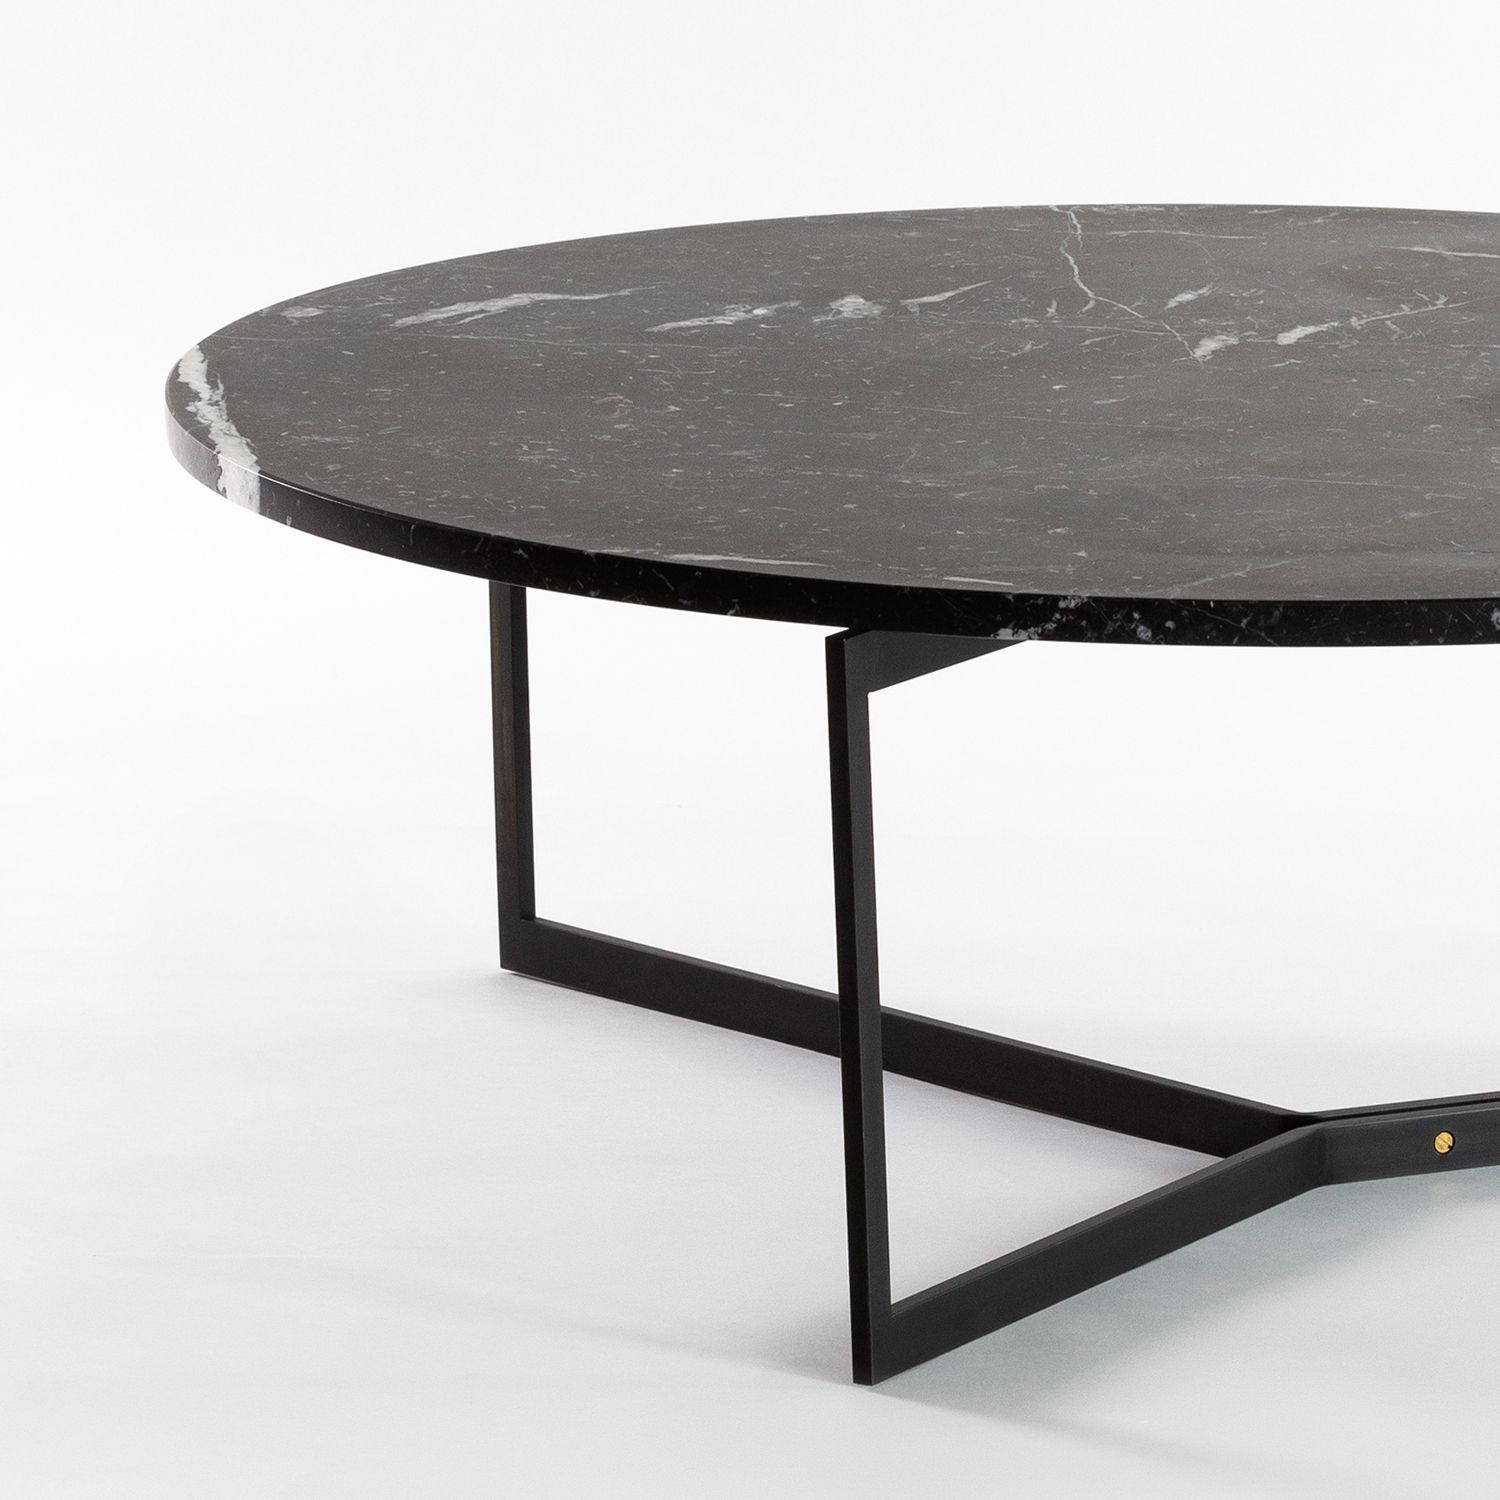 At14 Round Coffee Table With Sleek Steel Base Available In A Variety Of Tops Including Marble And Solid Hardwood Sho Coffee Table Table Round Coffee Table [ jpg ]